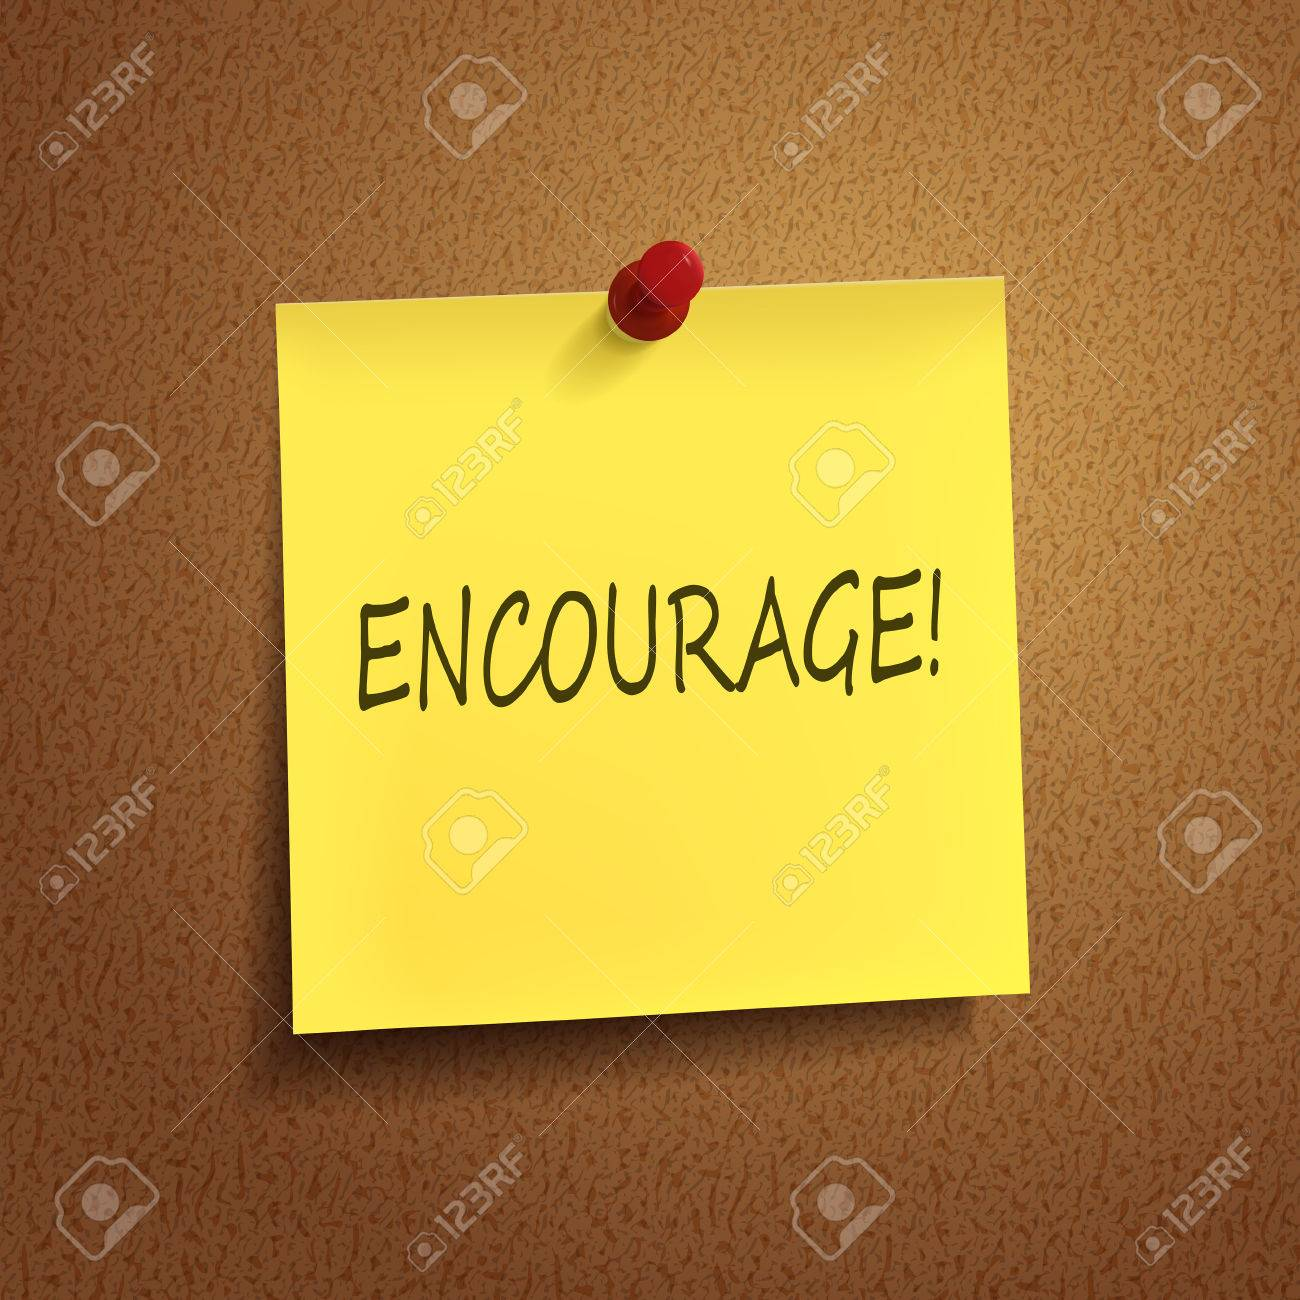 Image result for a picture of a encourage word